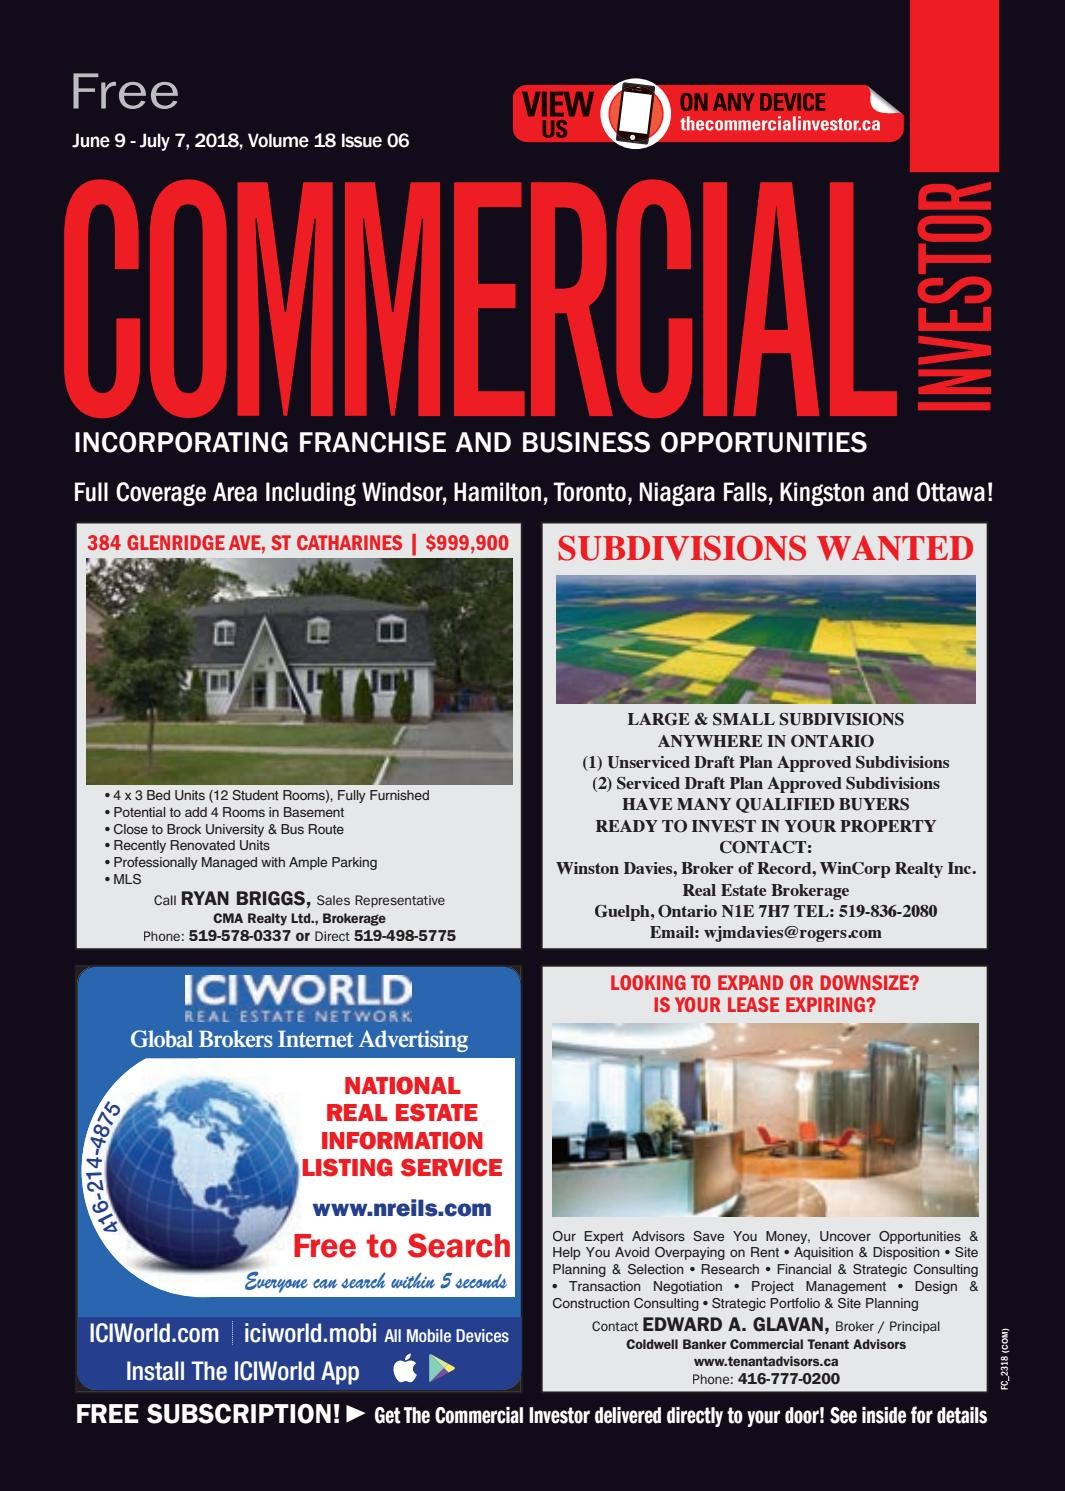 Groovy Commercial Investor 08 Jun 2018 By Nexthome Issuu Ibusinesslaw Wood Chair Design Ideas Ibusinesslaworg